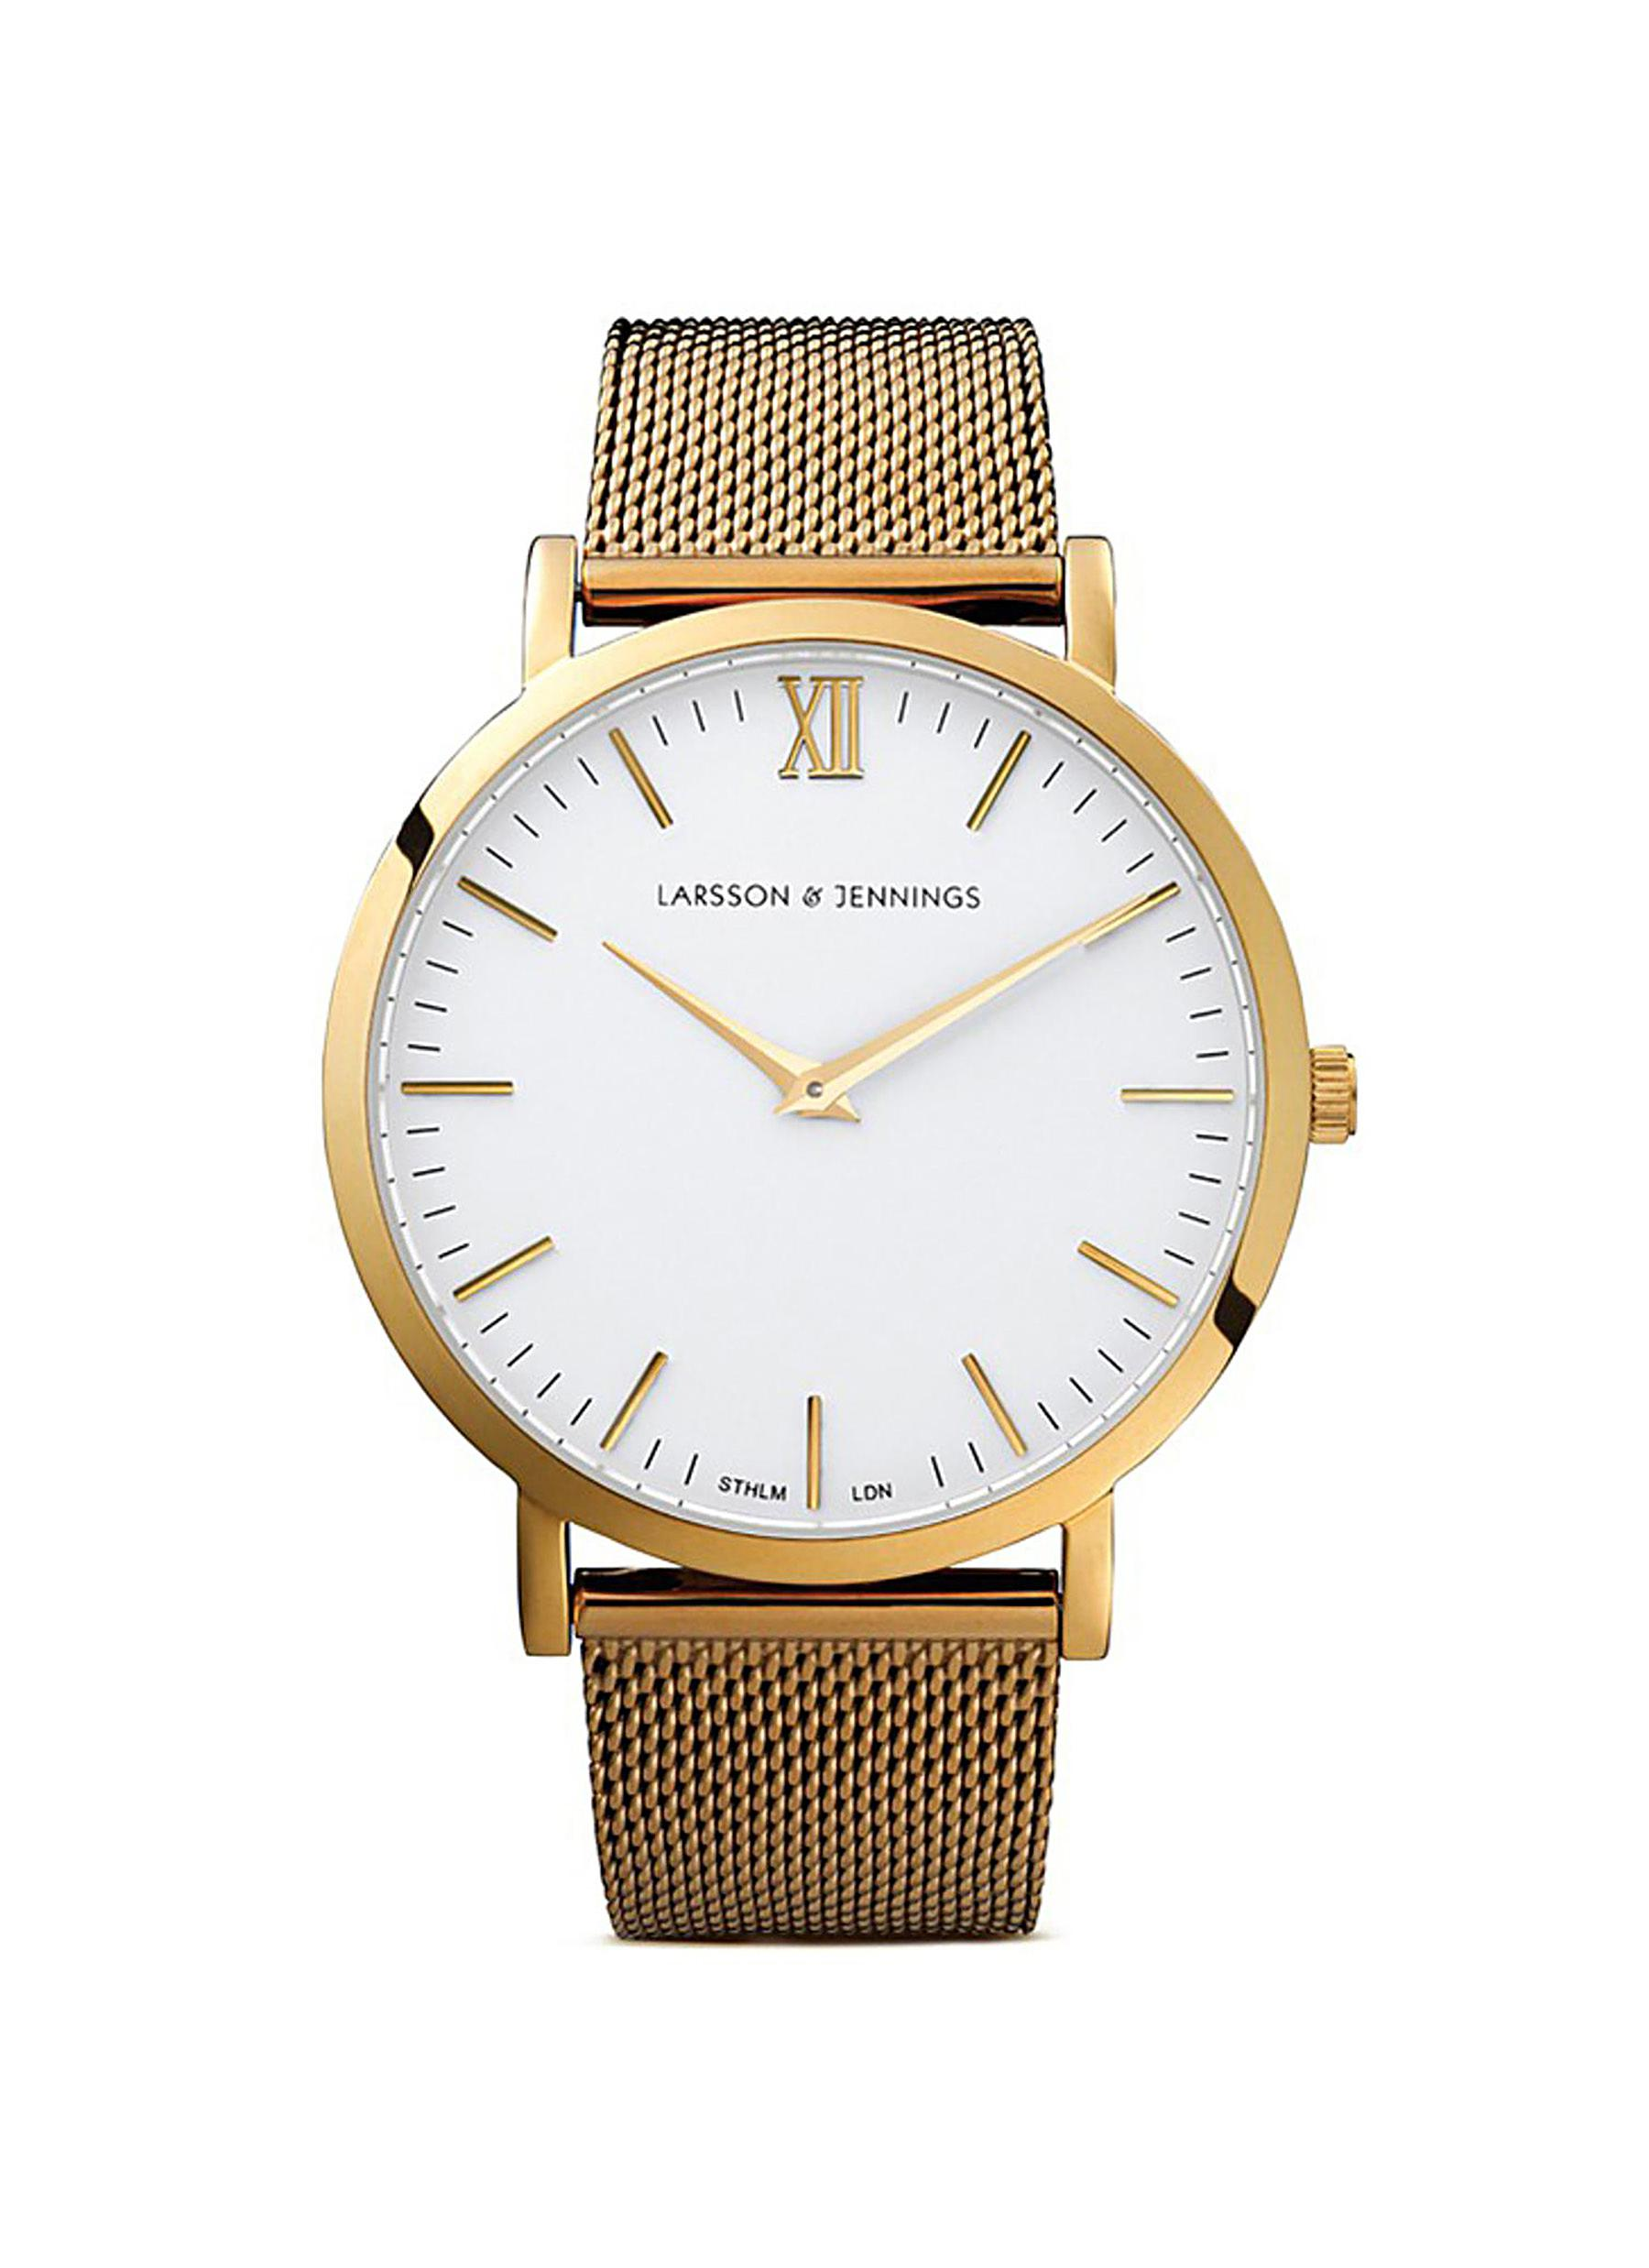 Lugano 40mm watch by Larsson & Jennings